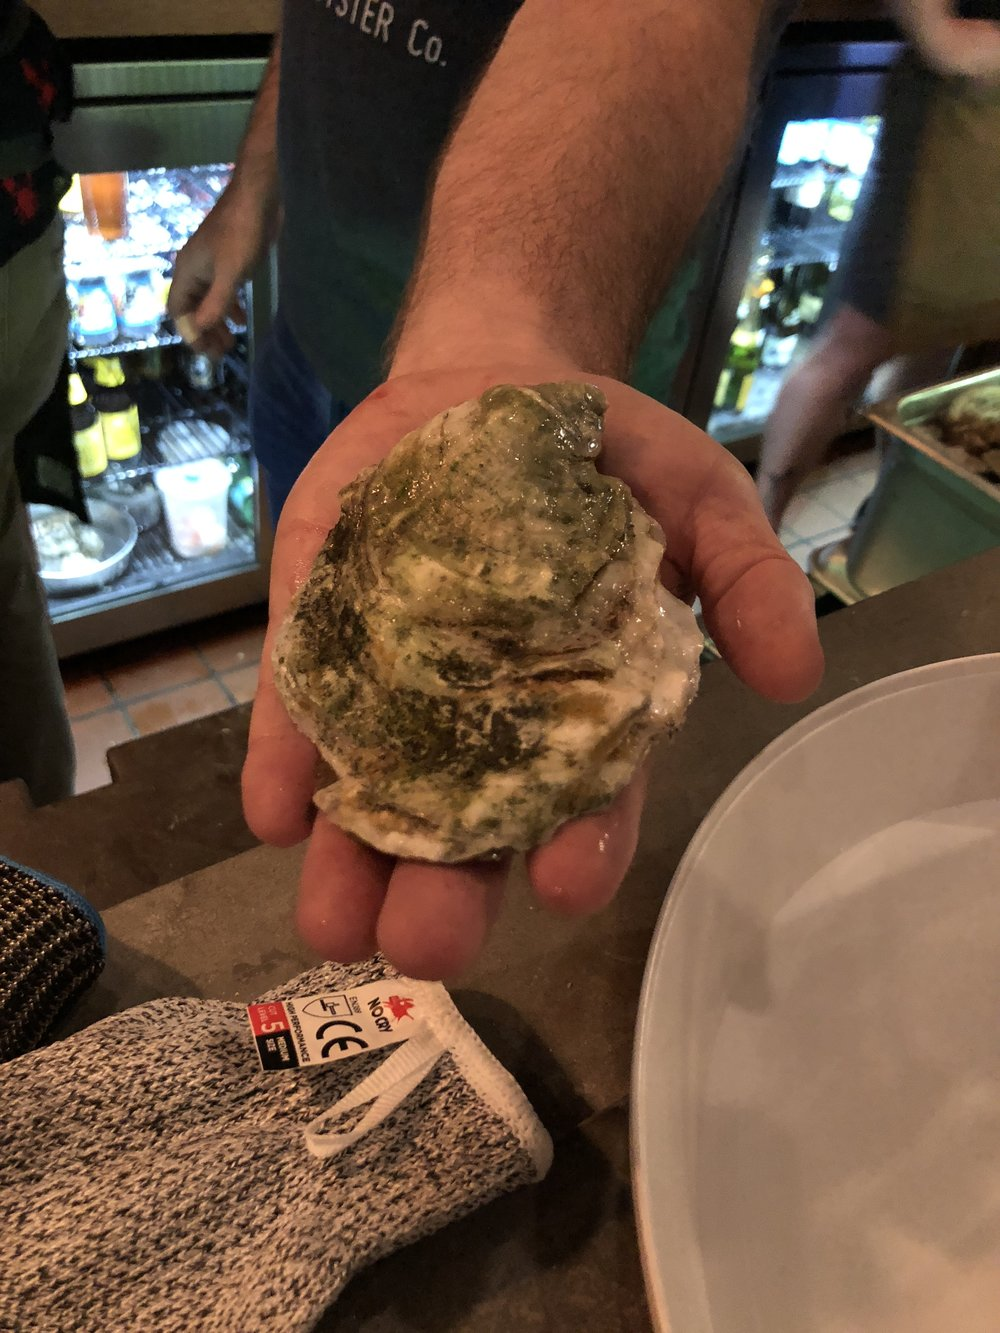 Chef Dennis Marron shows off one of the Oysters from Merchant Oyster